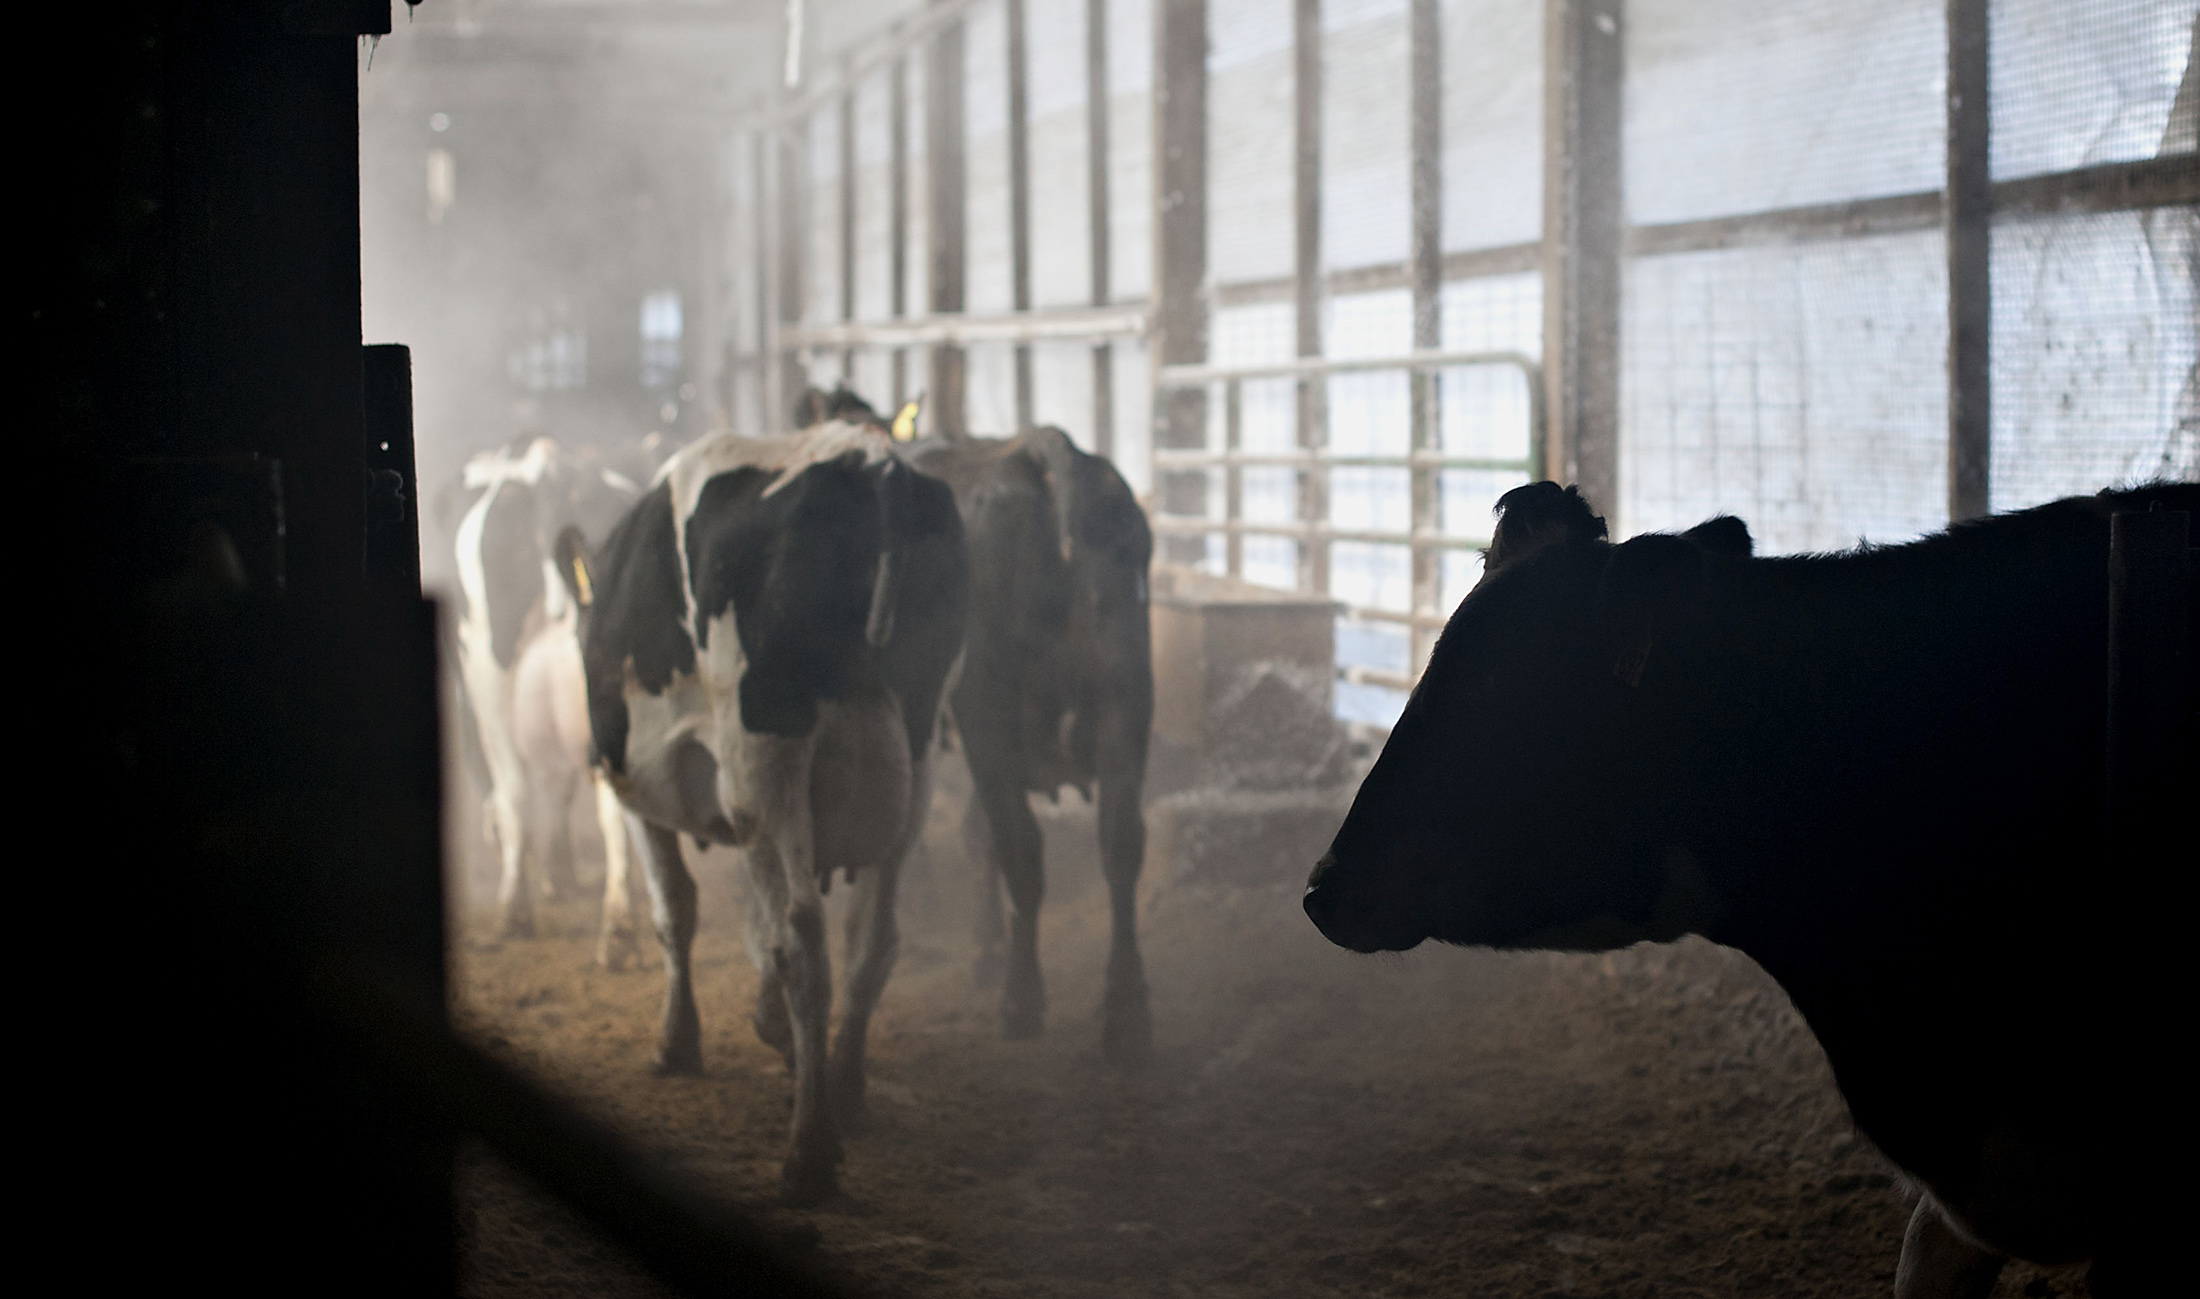 Killing Off American Cows to Keep Milk Prices High - Bloomberg